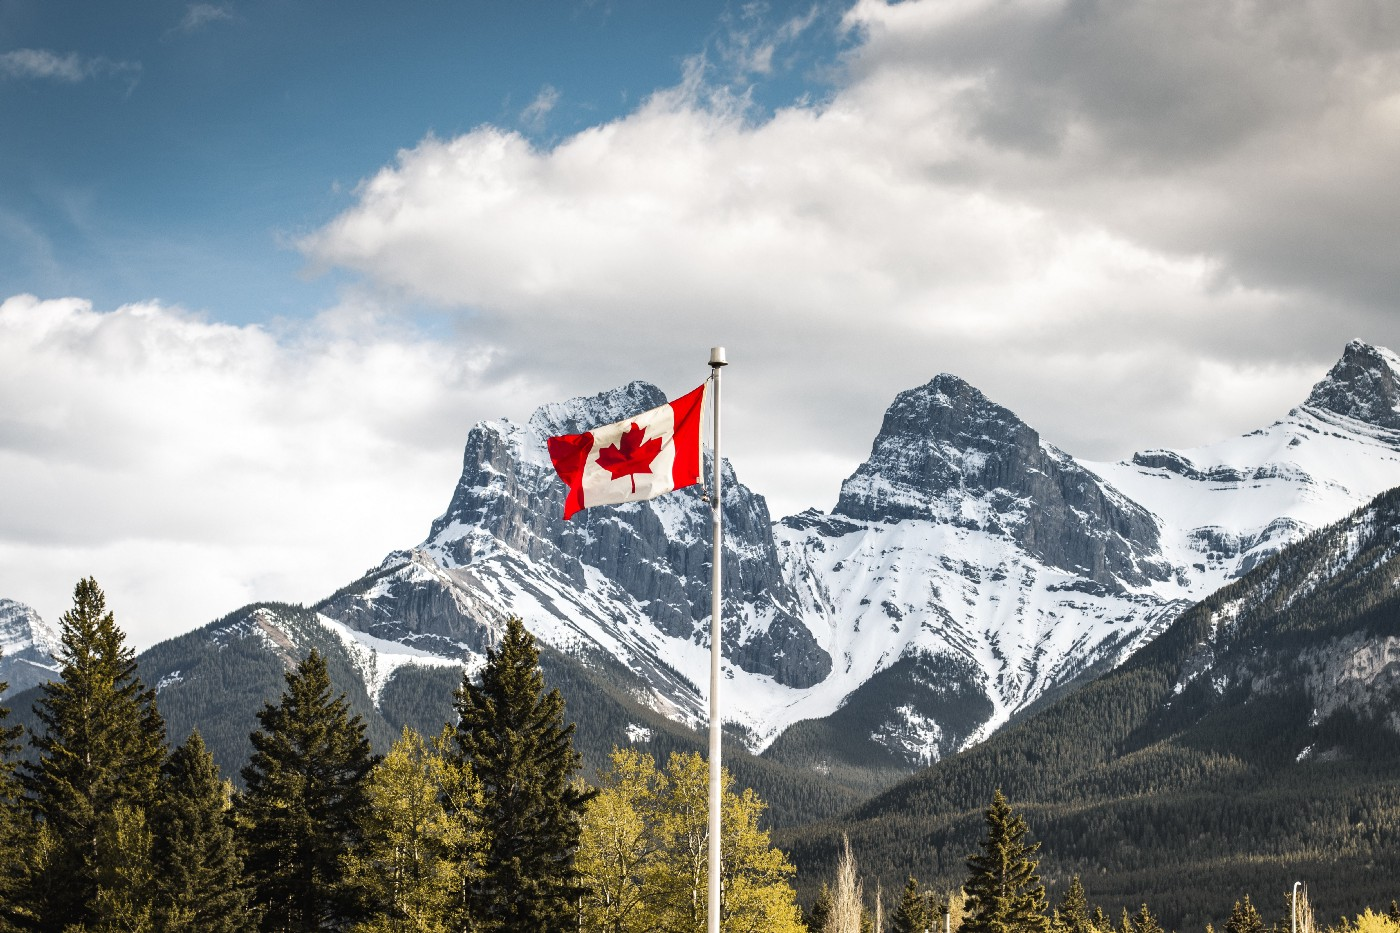 Canada Canmore, Alberta. Canadian Flag with Three Sisters in the Background. Photo and text by Igor Kyryliuk on Unsplash